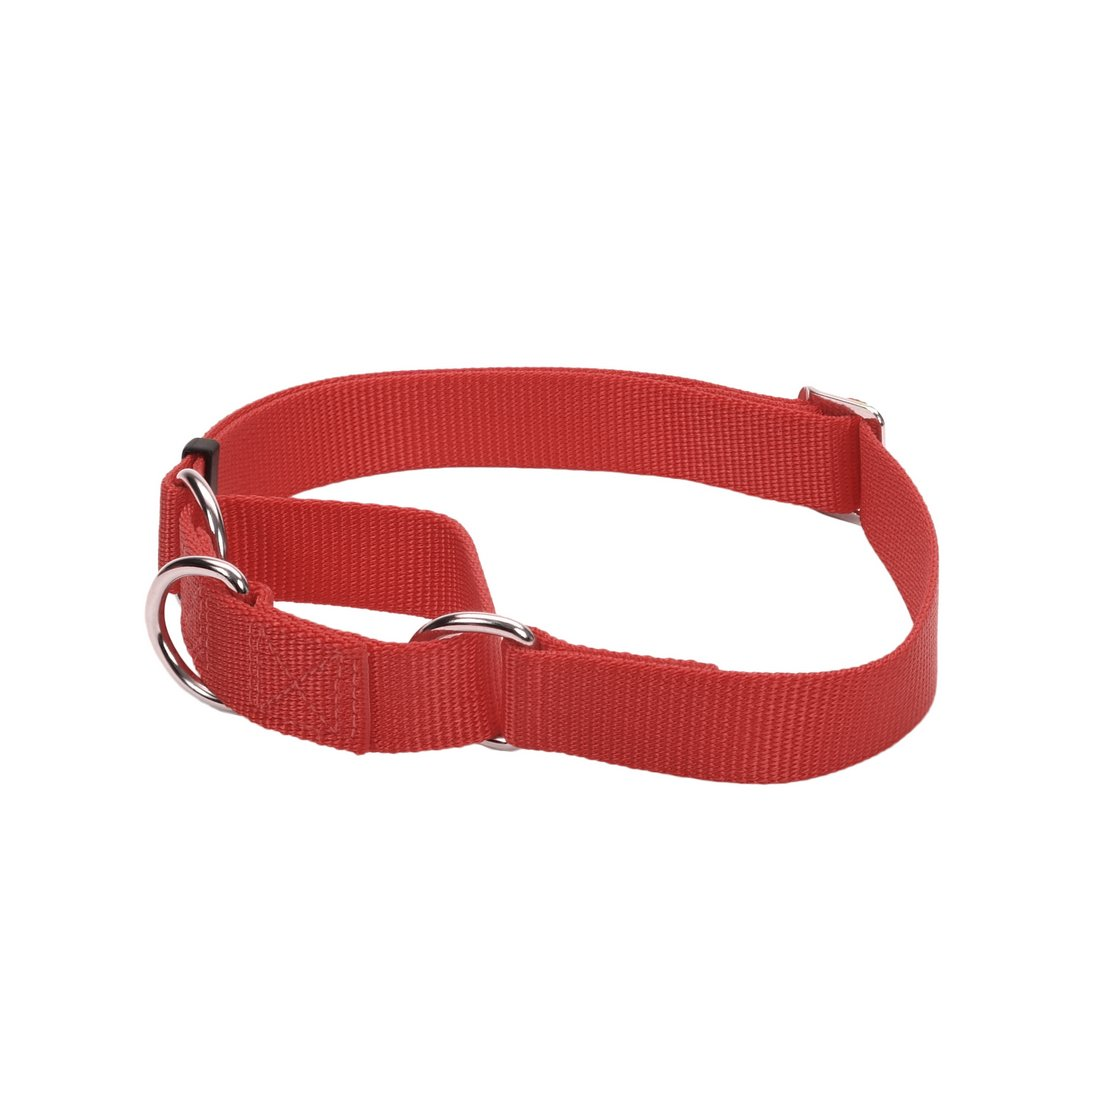 hf-collar-martingale-collar-red